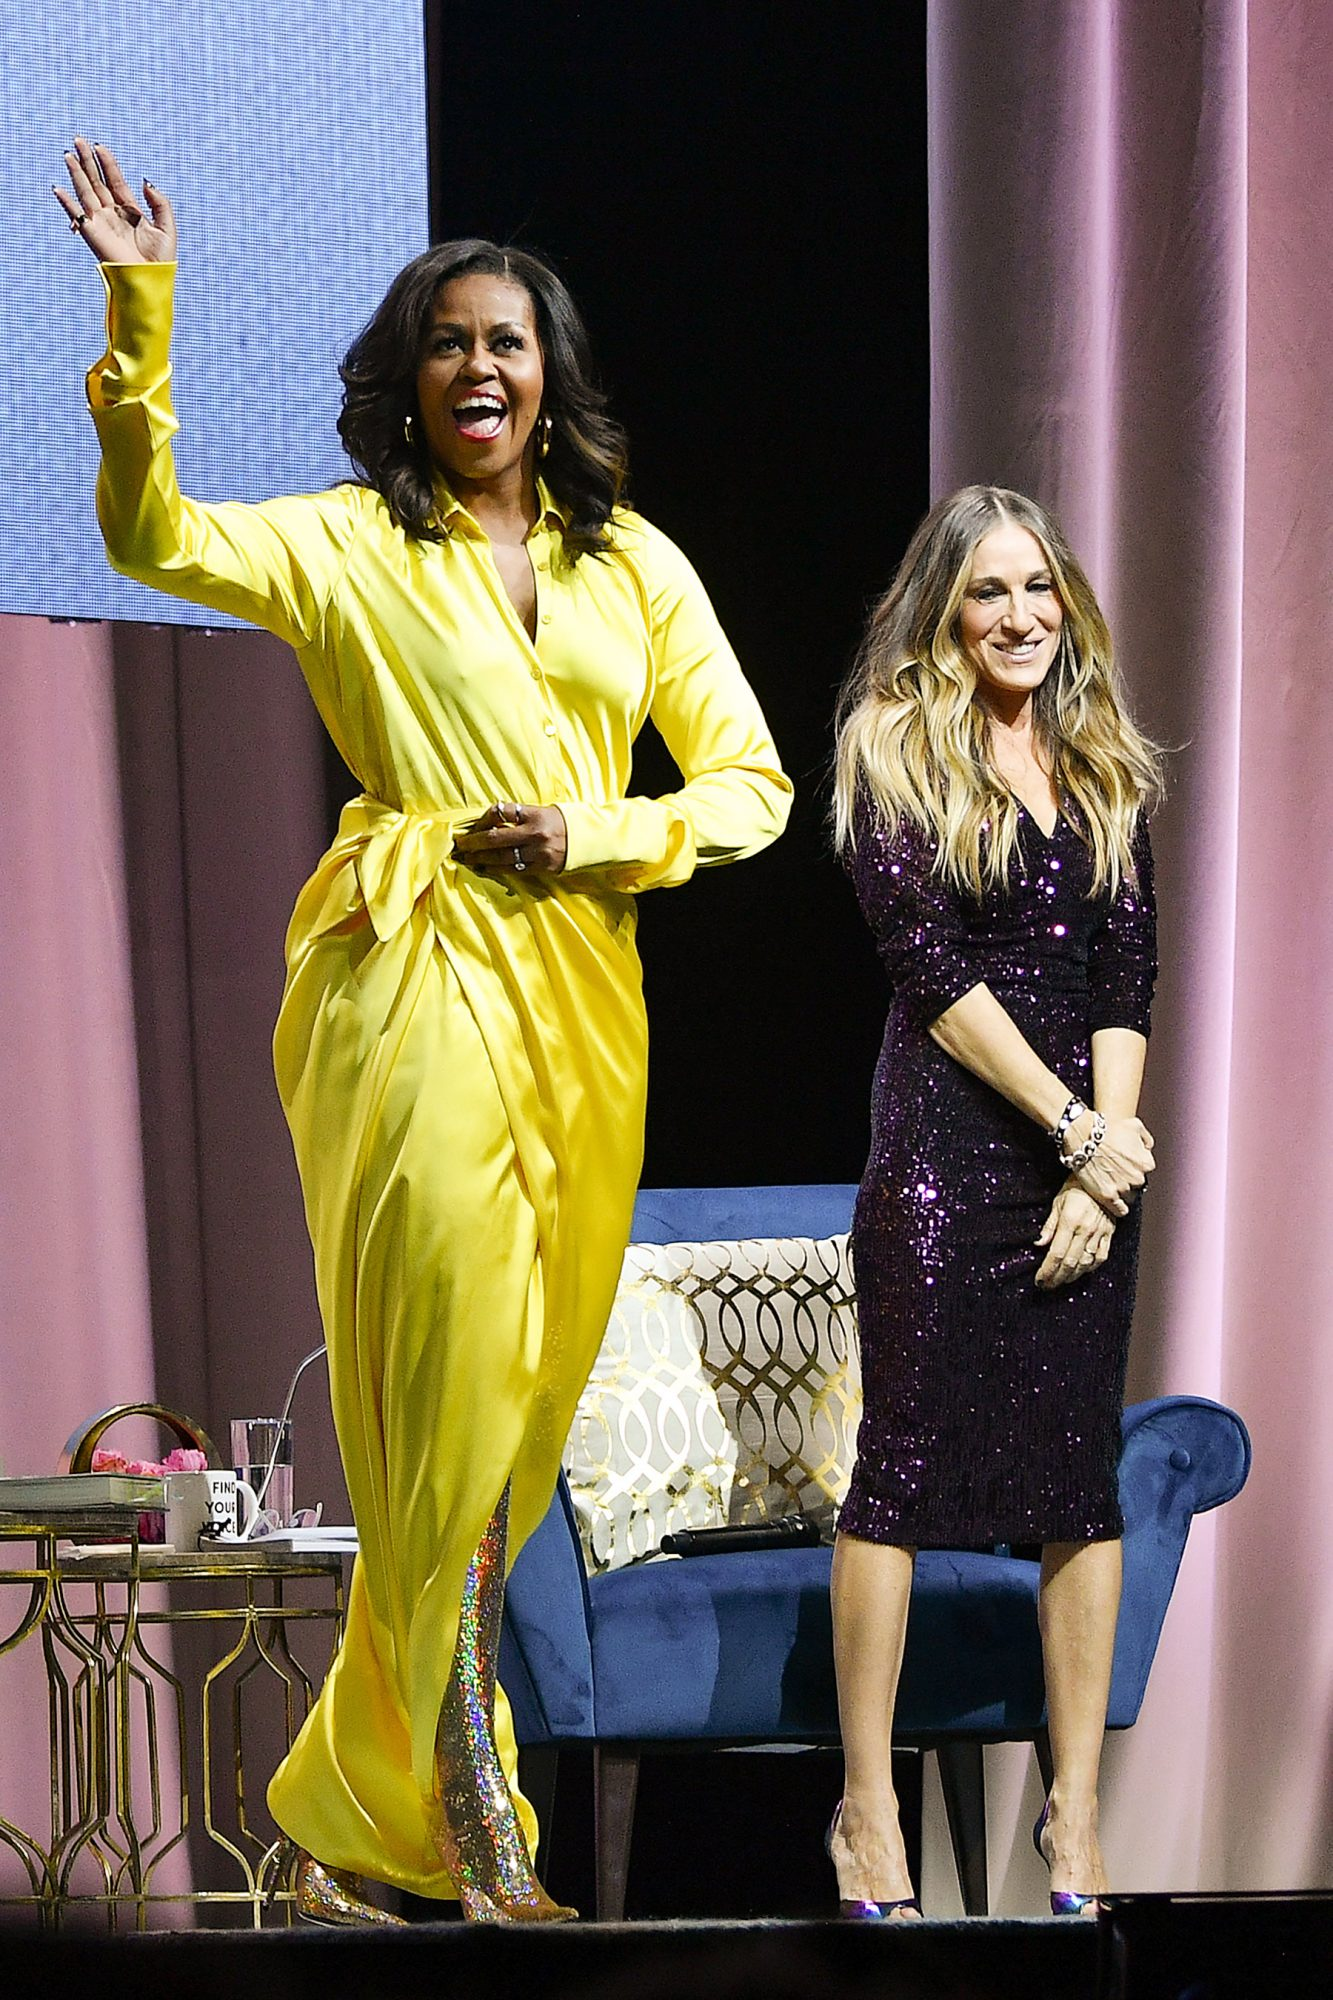 """BESTPIX - Michelle Obama Discusses Her New Book """"Becoming"""" With Sarah Jessica Parker"""